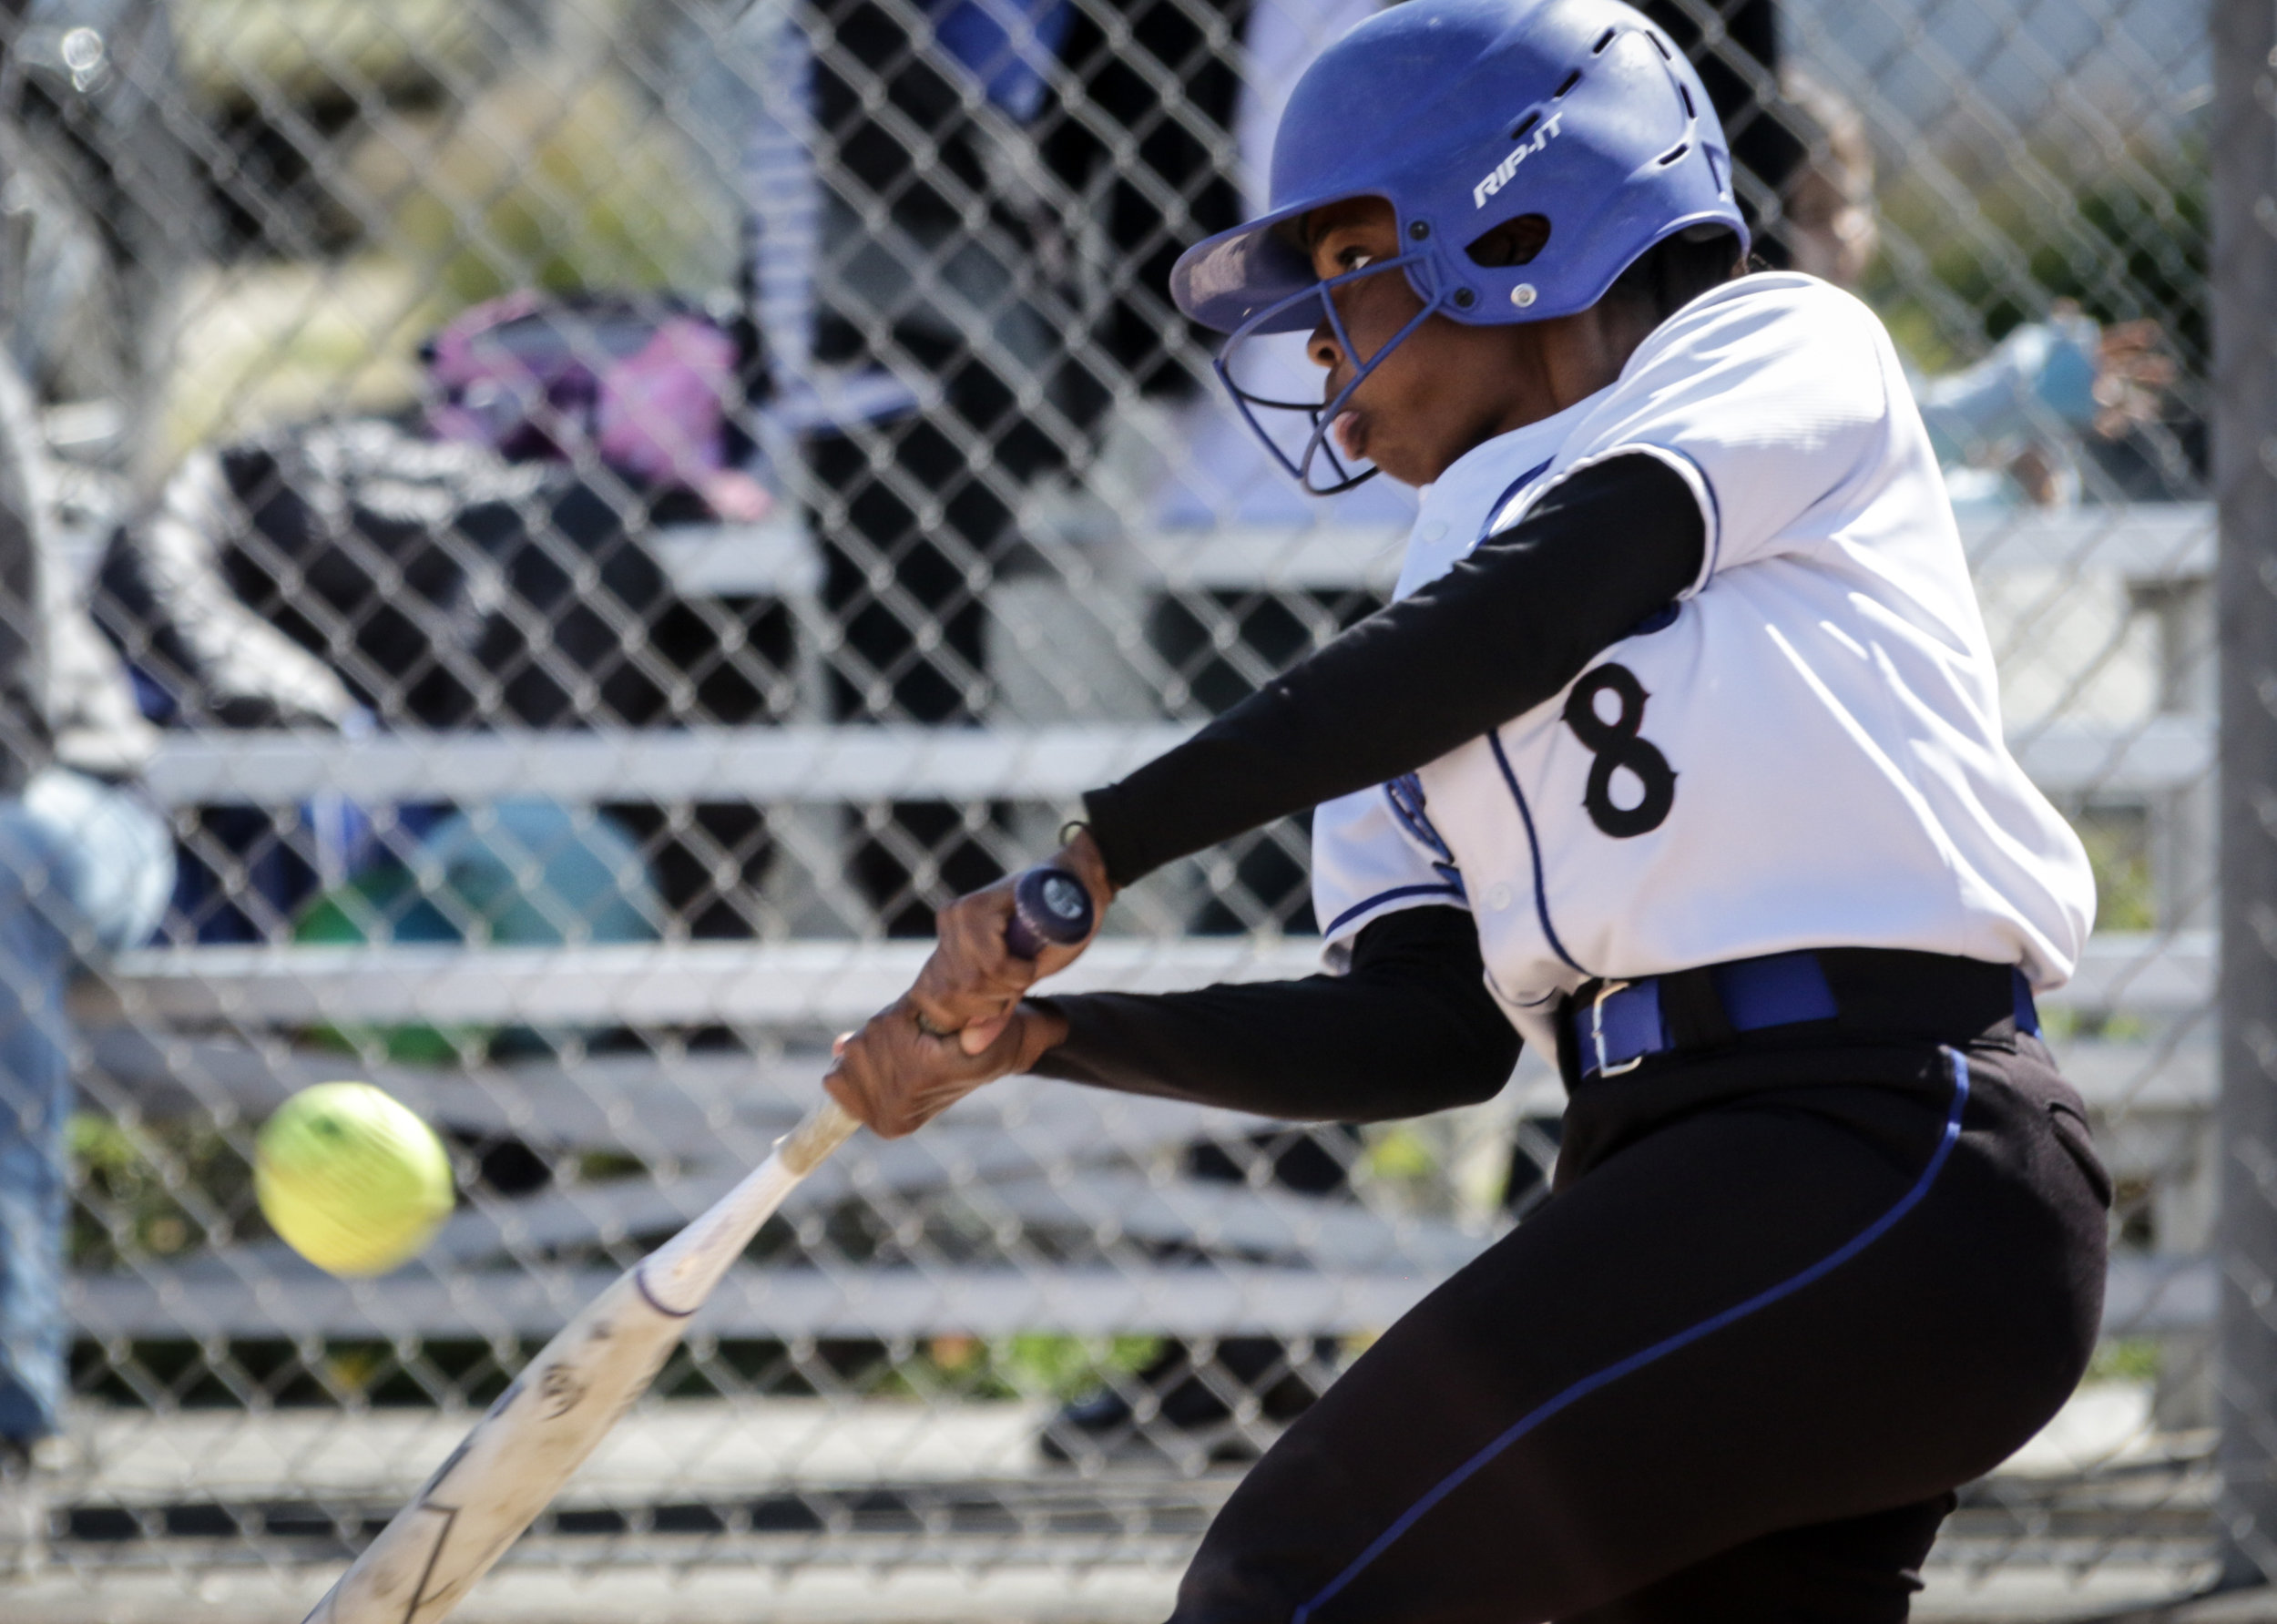 Santa Monica College Corsair softball team batter Kahlaysia Miller (#8) attempts to get a hit during their game against Oxnard College on thursday, April 19th, 2018. The game ended 3-2 in favor for Santa Monica College. (Santa Monica, California, Thursday April 19th, 2018) (Ashutosh  Bikram Singh/Corsair Photo)